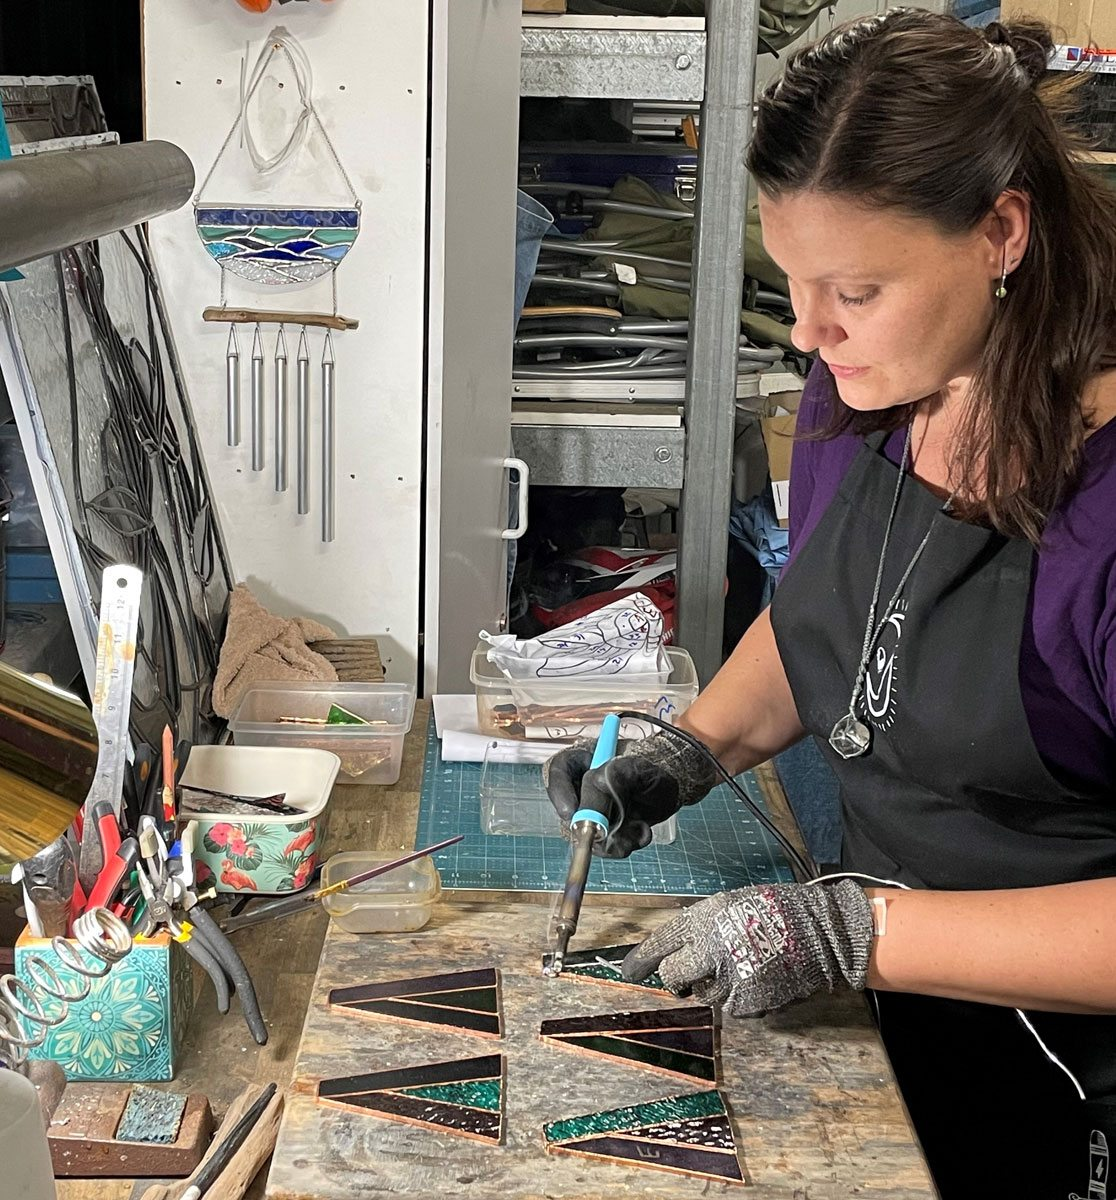 Kahleah at work on a stained-glass project in her home workspace